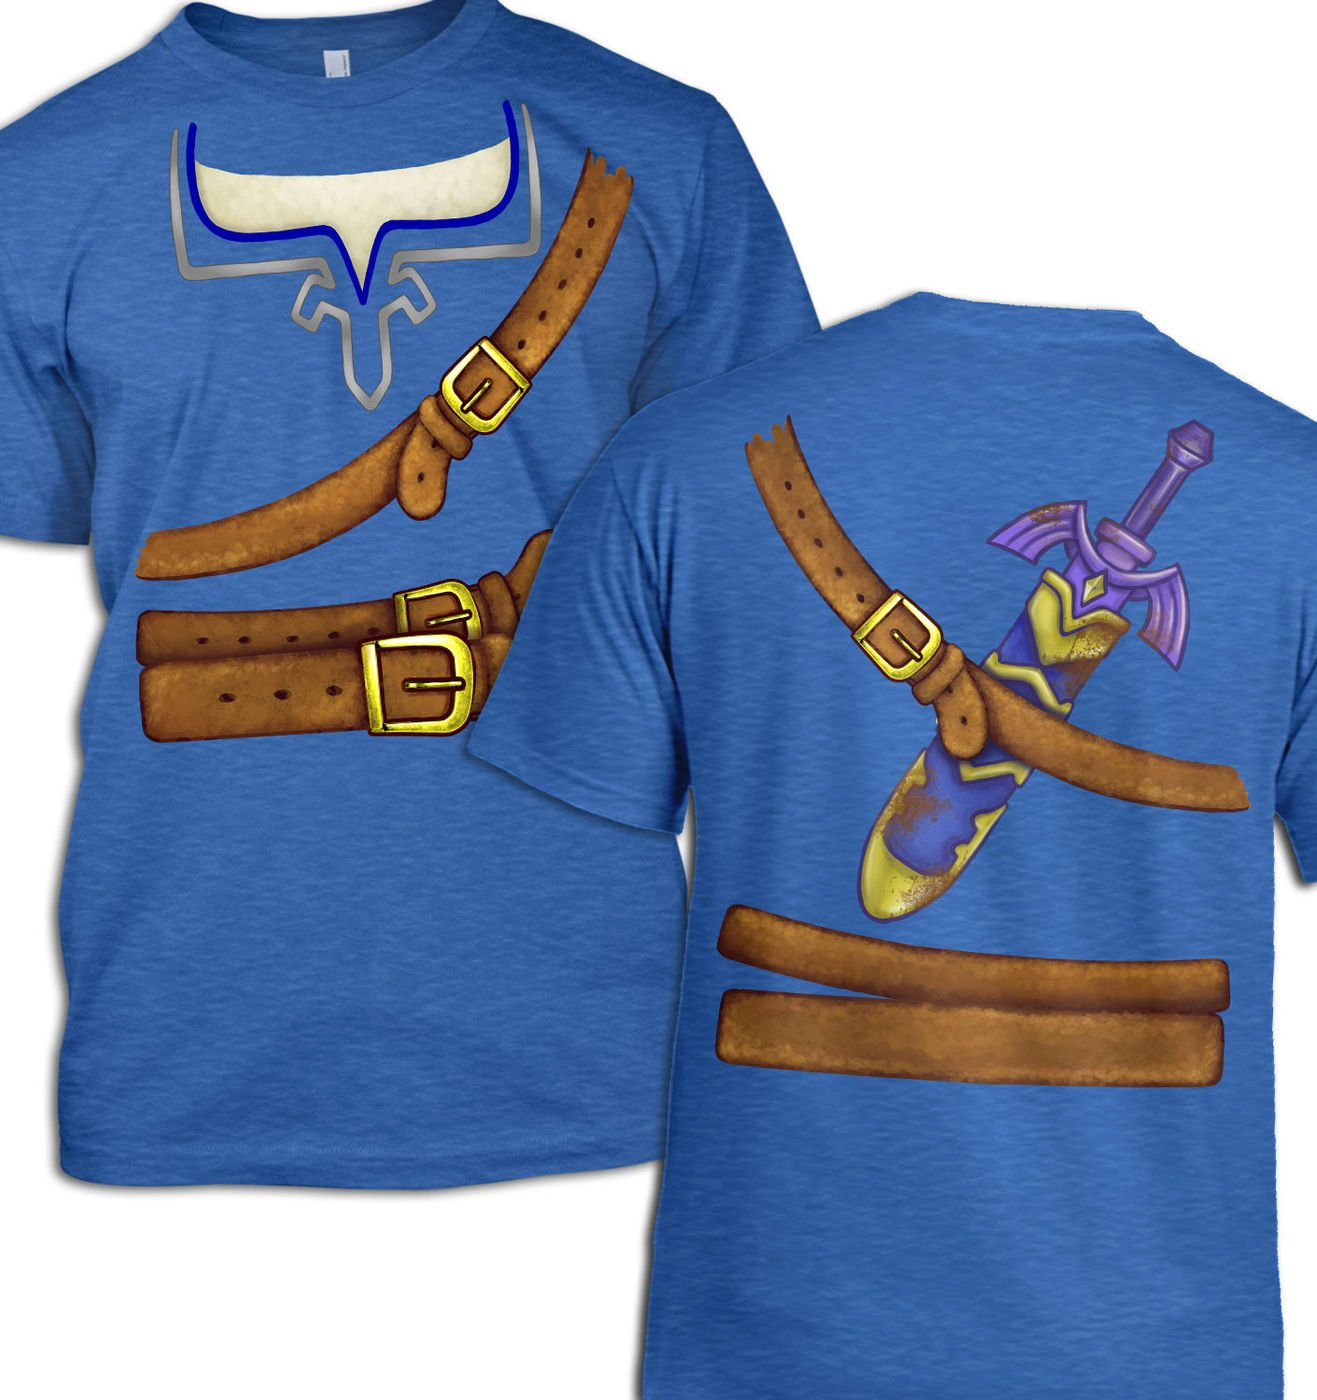 Blue Hyrule Warrior Costume men's t-shirt by Something Geeky